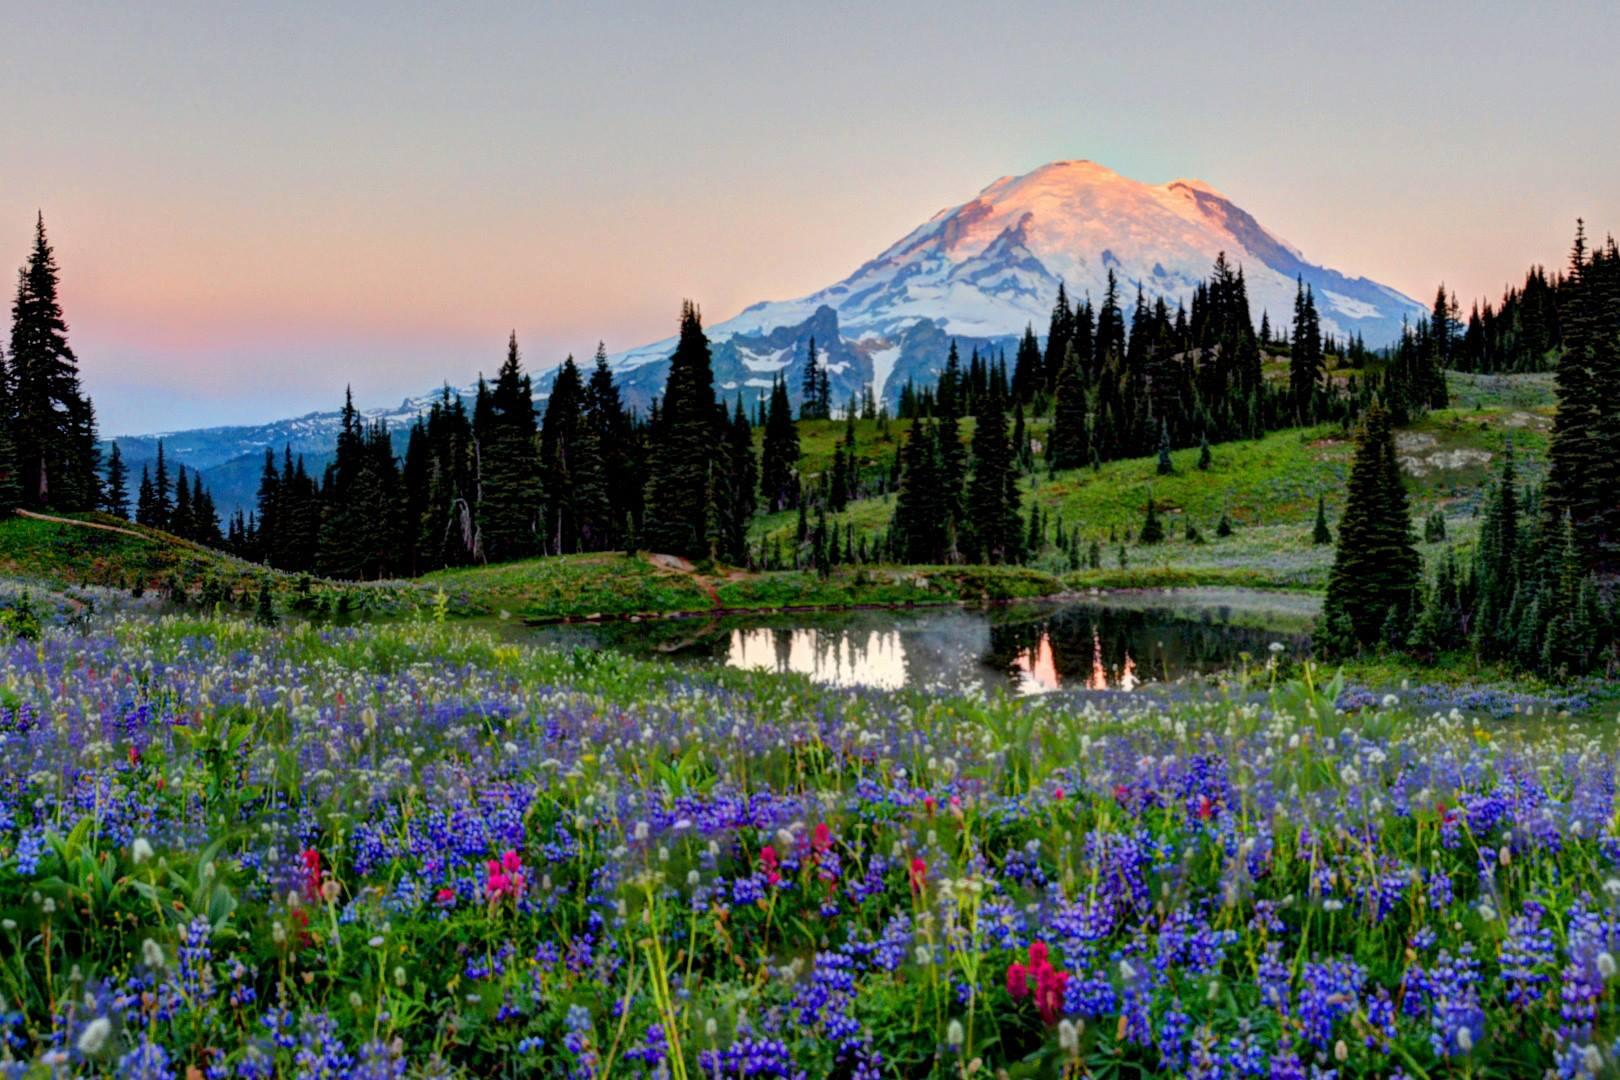 We're wild for this photo of Mt. Rainier w/ the wildflowers at their peak! Credit: Tom Gubala http://t.co/IeGQcWqJEf